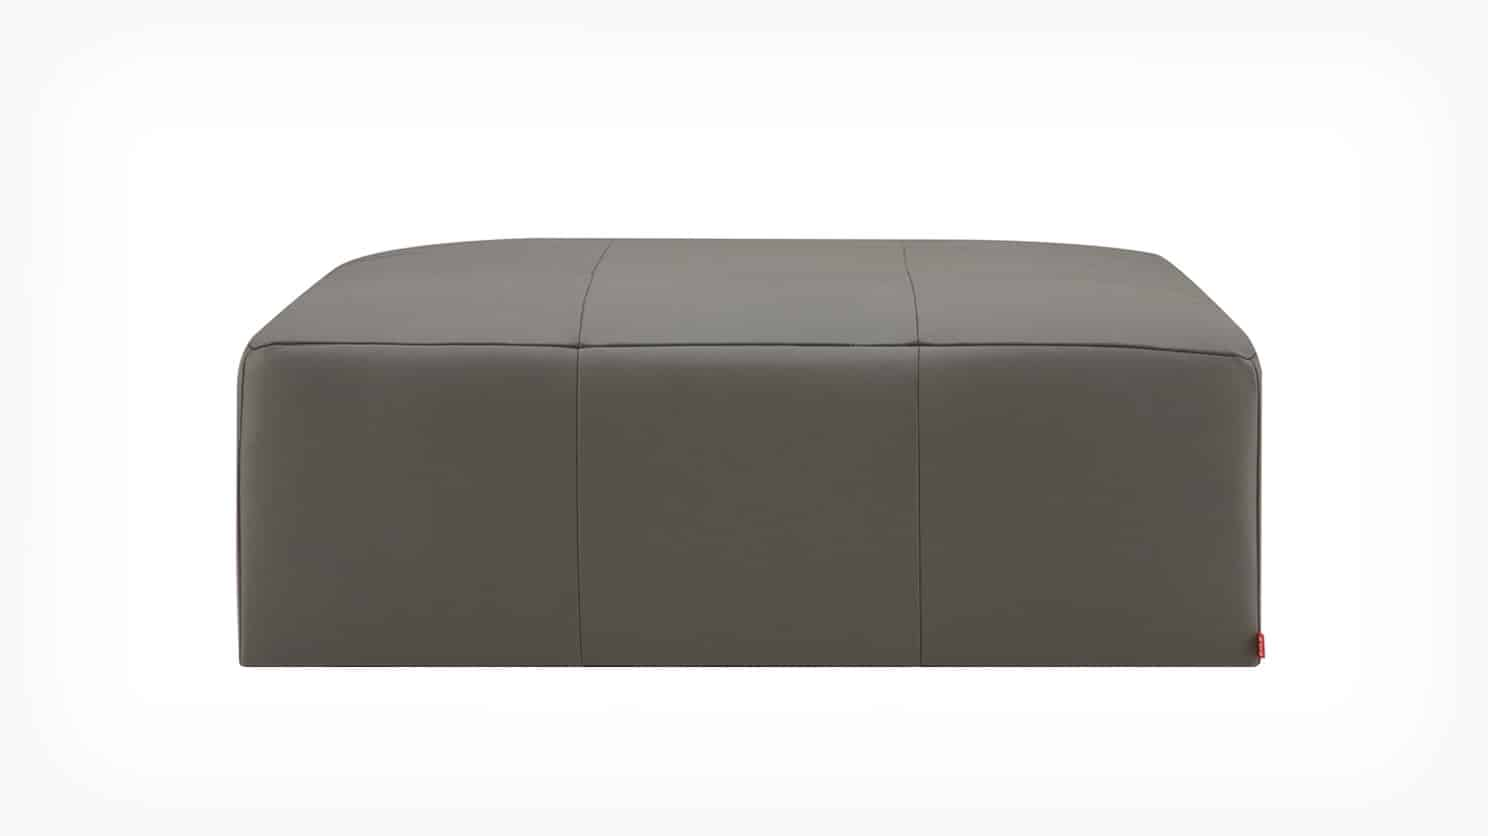 37026 04 01 ottoman morten leather front view